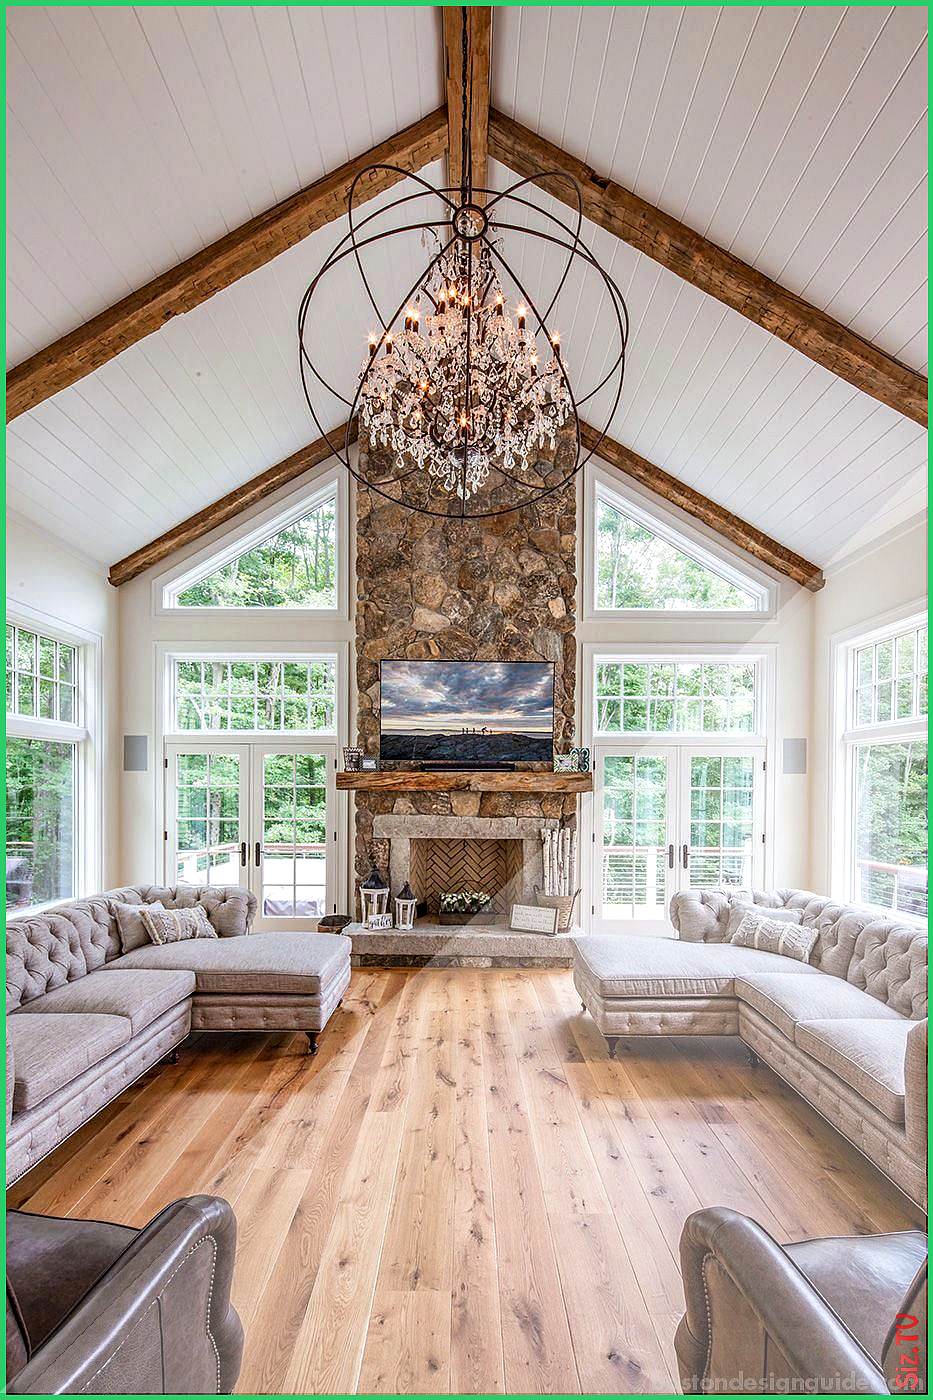 Perfect Great Room Vaulted Ceiling Exposed Beams With Beadboard